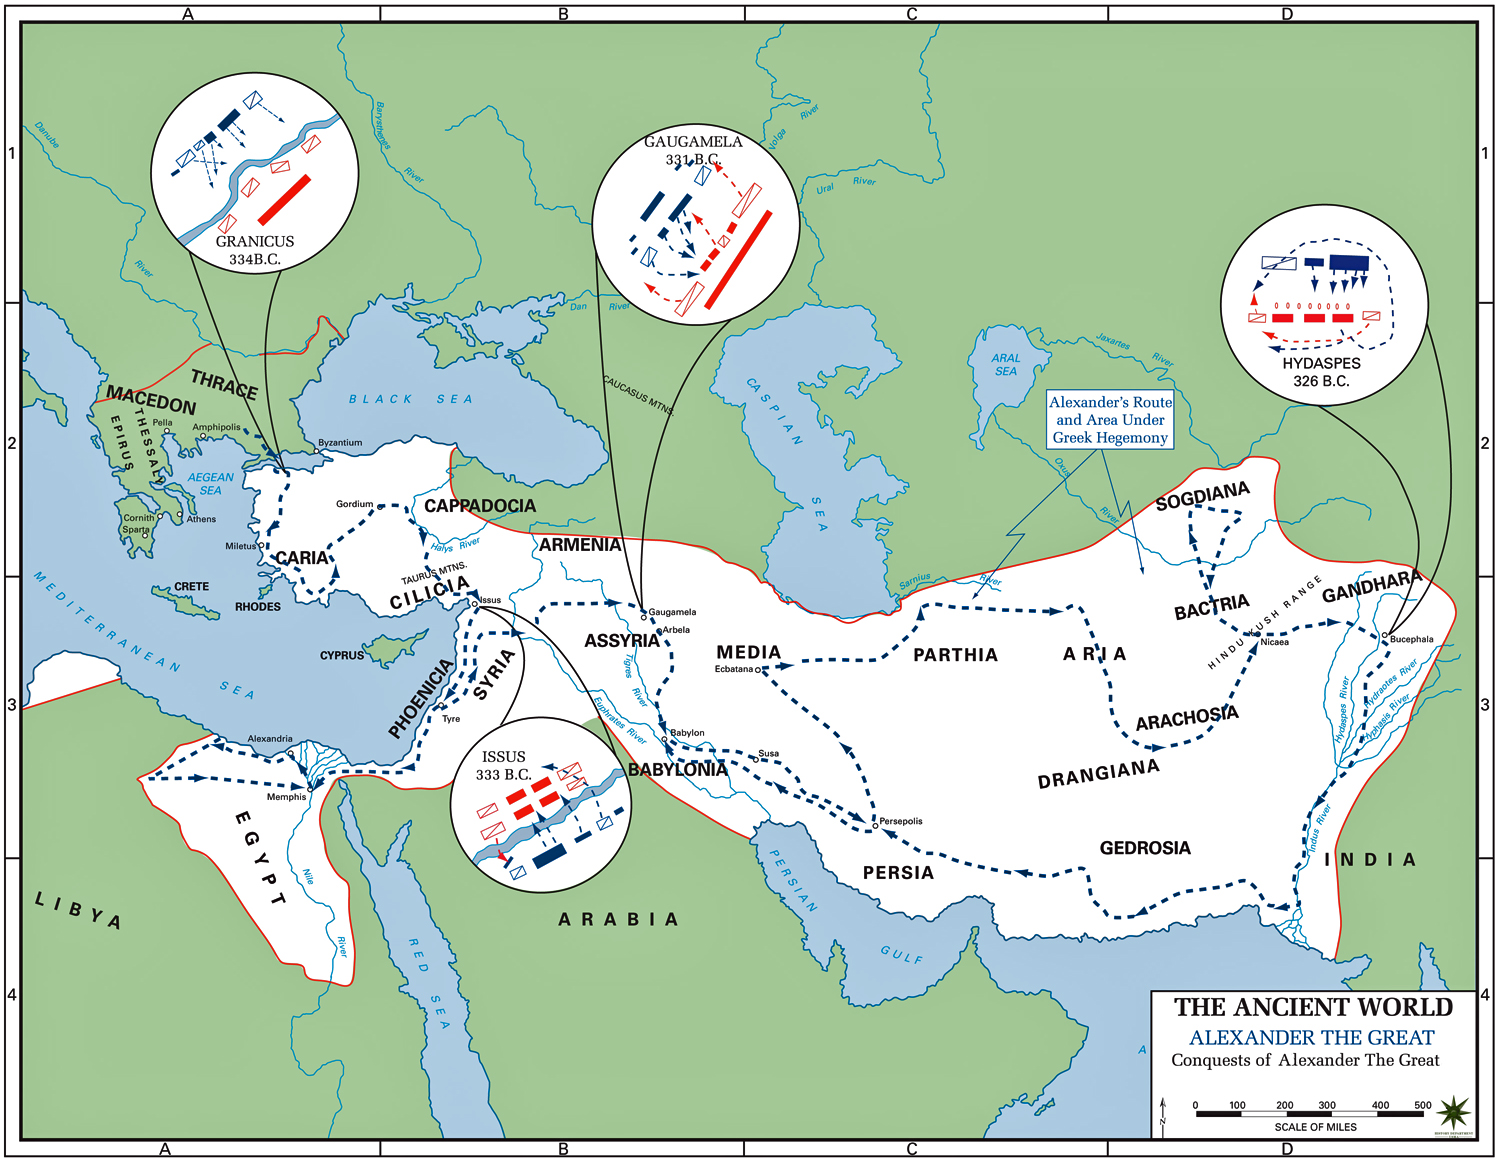 alexander the great conquered greece